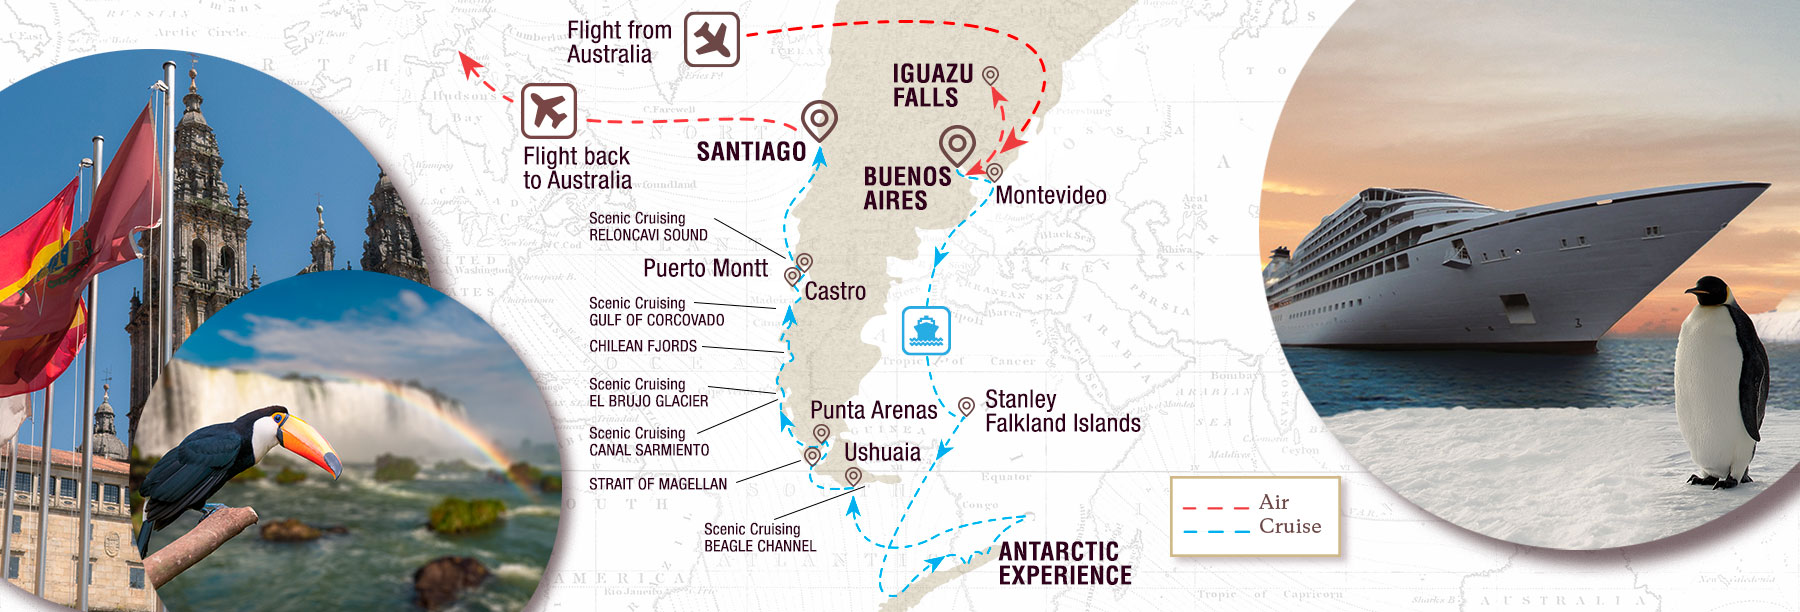 Rhythms of South America & Antarctica Map